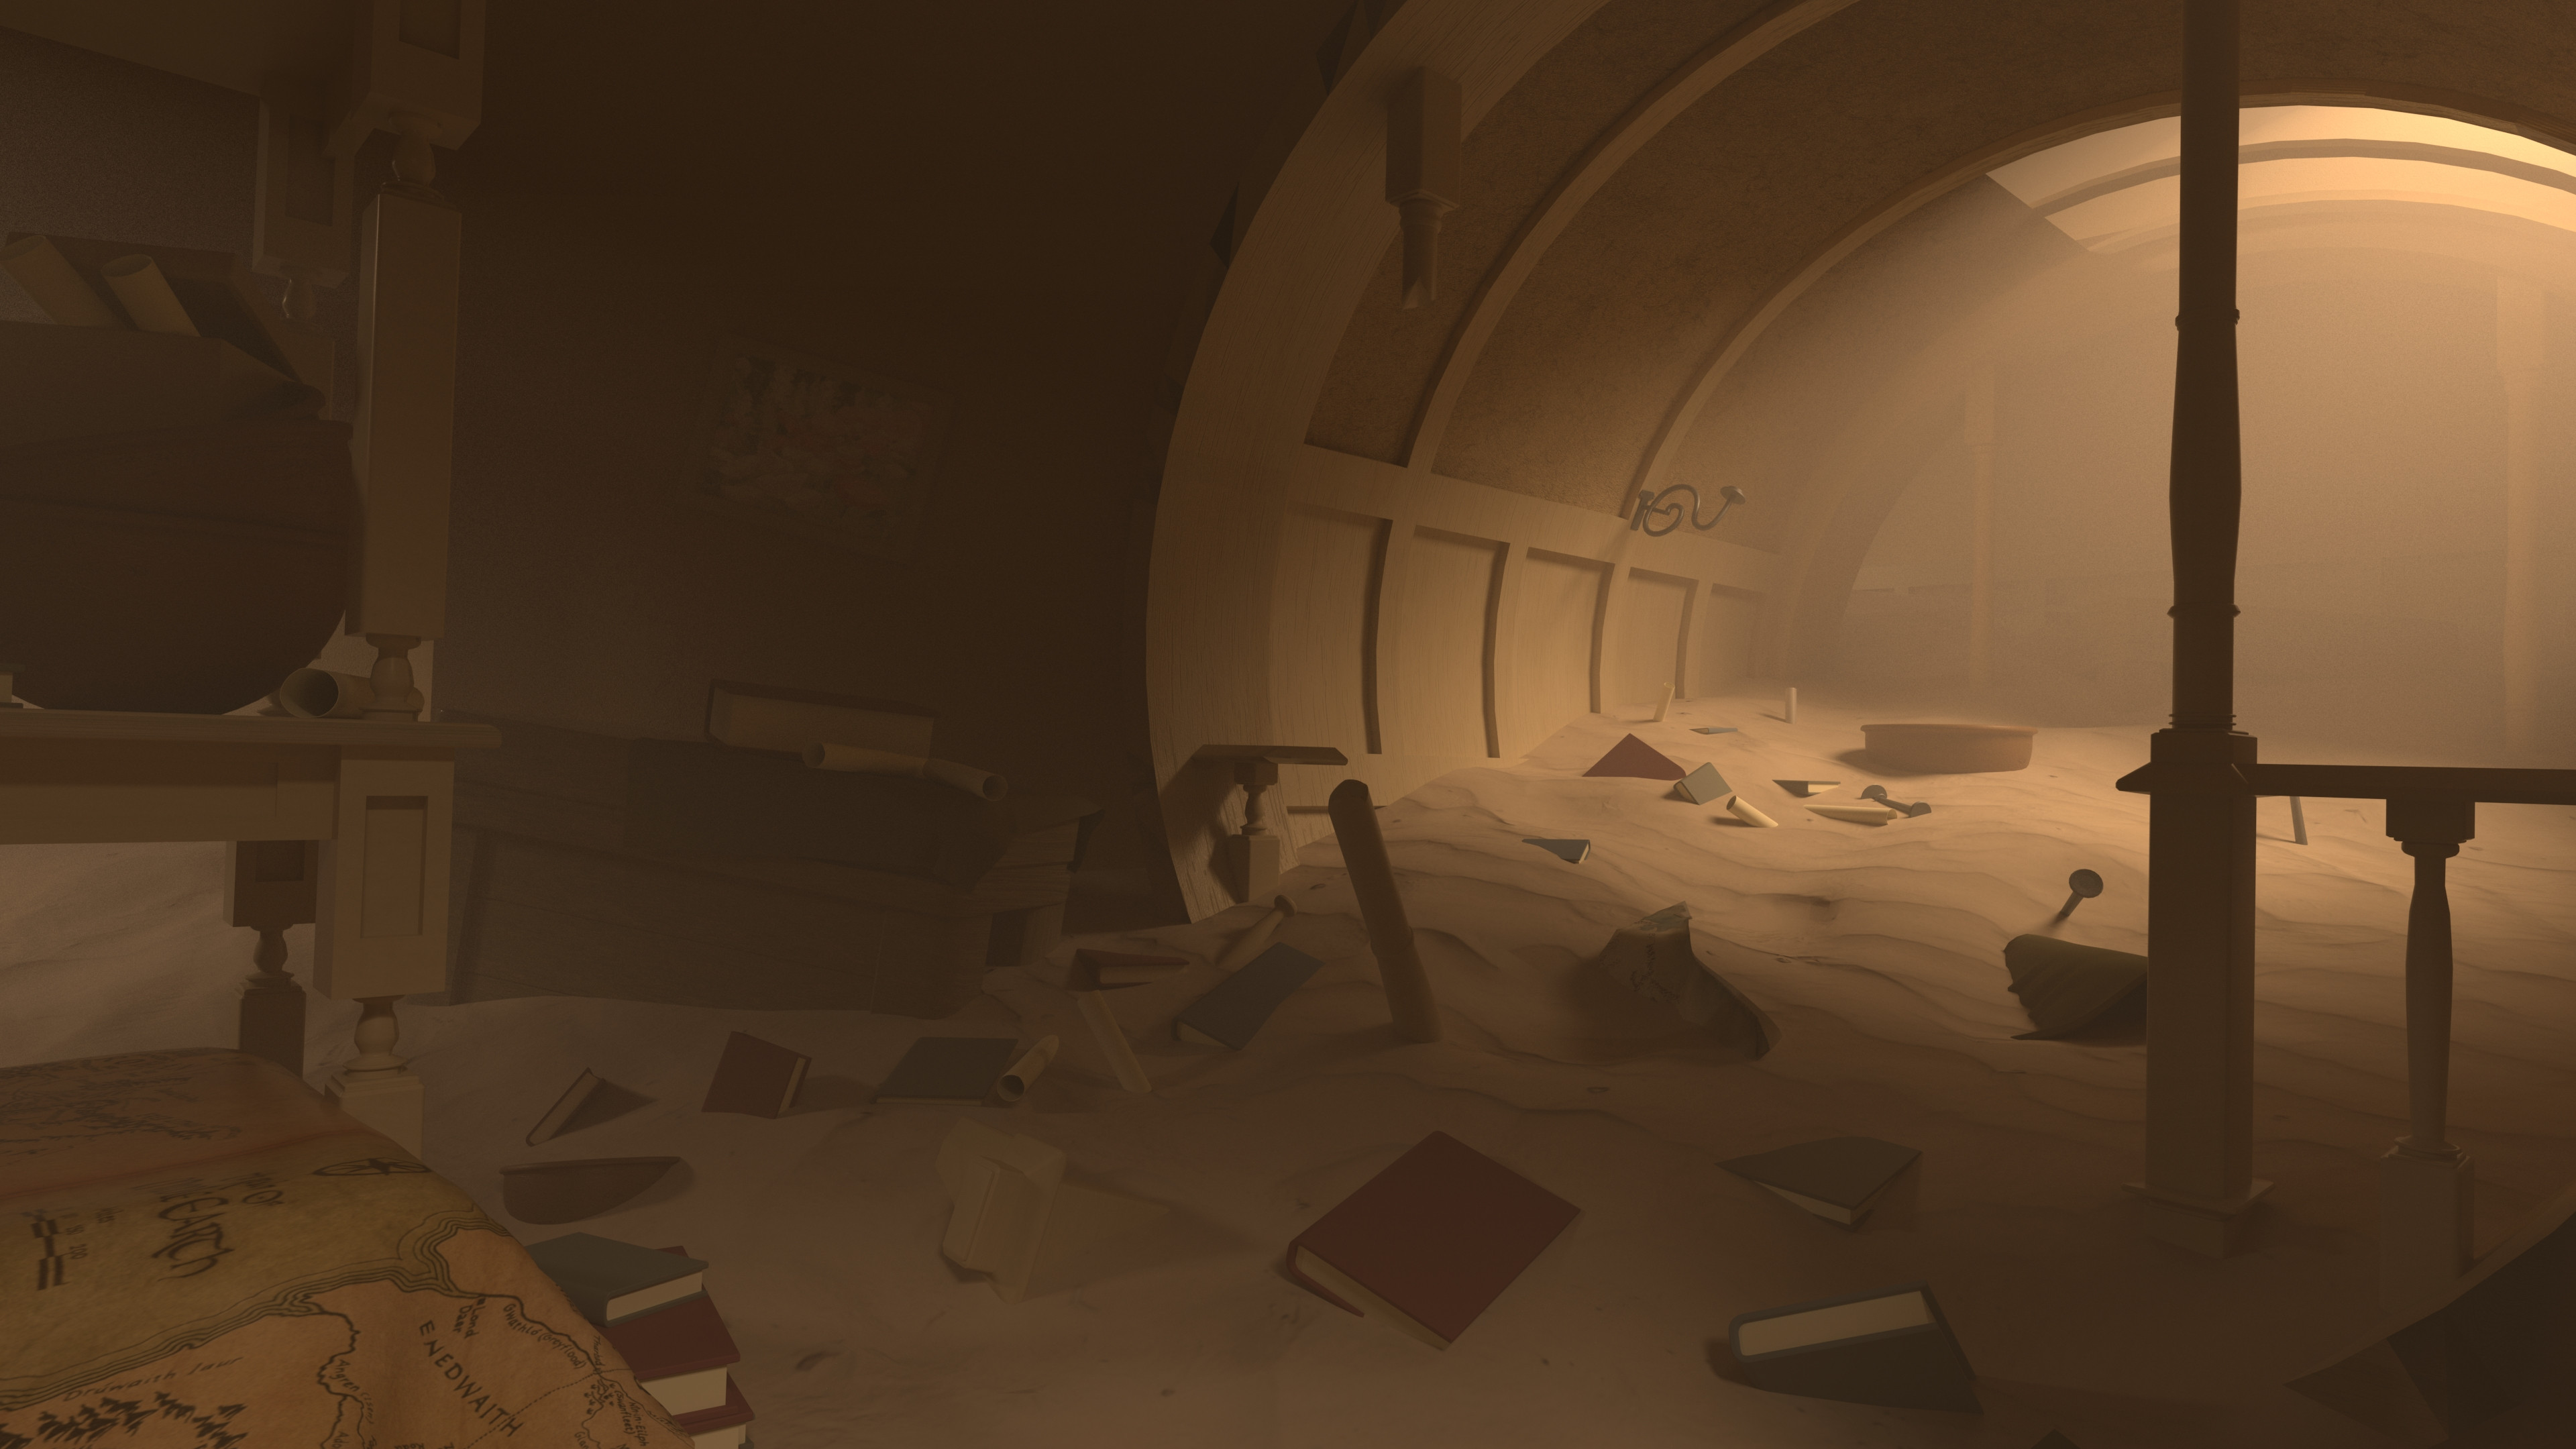 Here is an alternate lighting setup for the sandstorm version of bag end